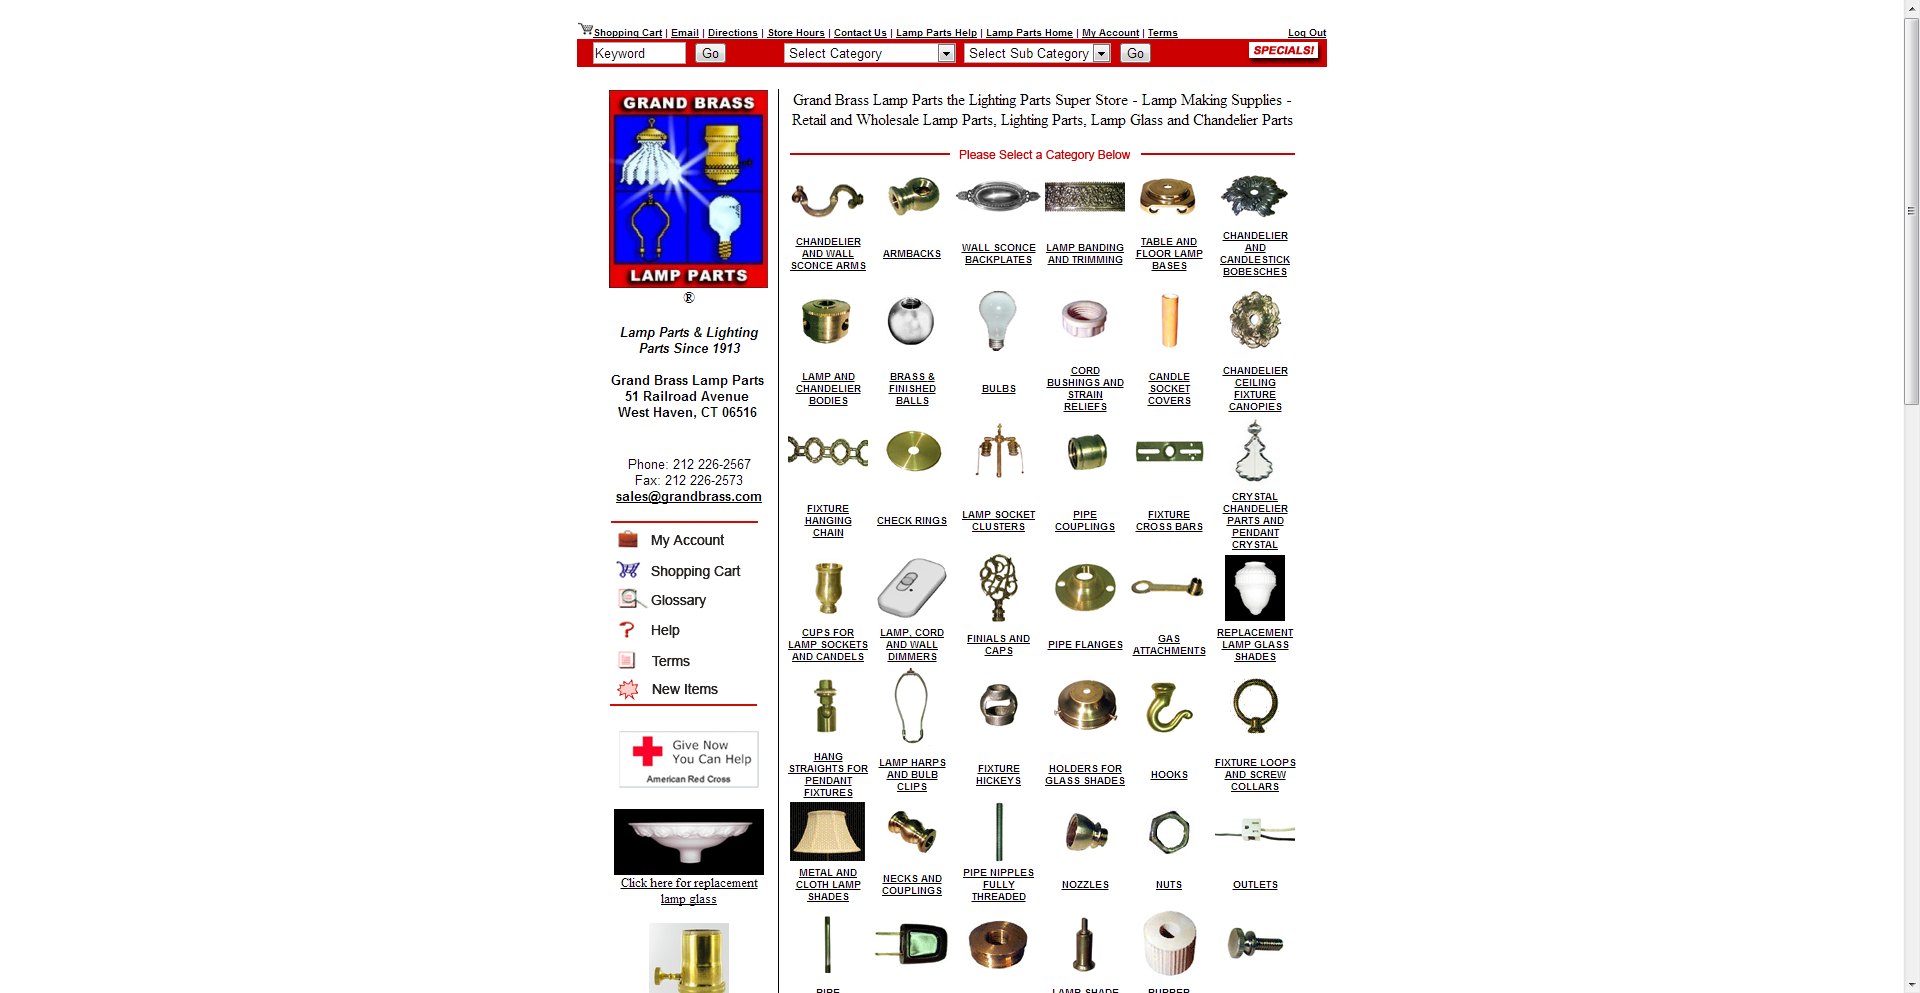 Nyc lamp parts lighting parts lamp glass and chandelier parts nyc lamp parts lighting parts lamp glass and chandelier parts grand brass lamp parts the lighting parts super store lamp making supplies retail aloadofball